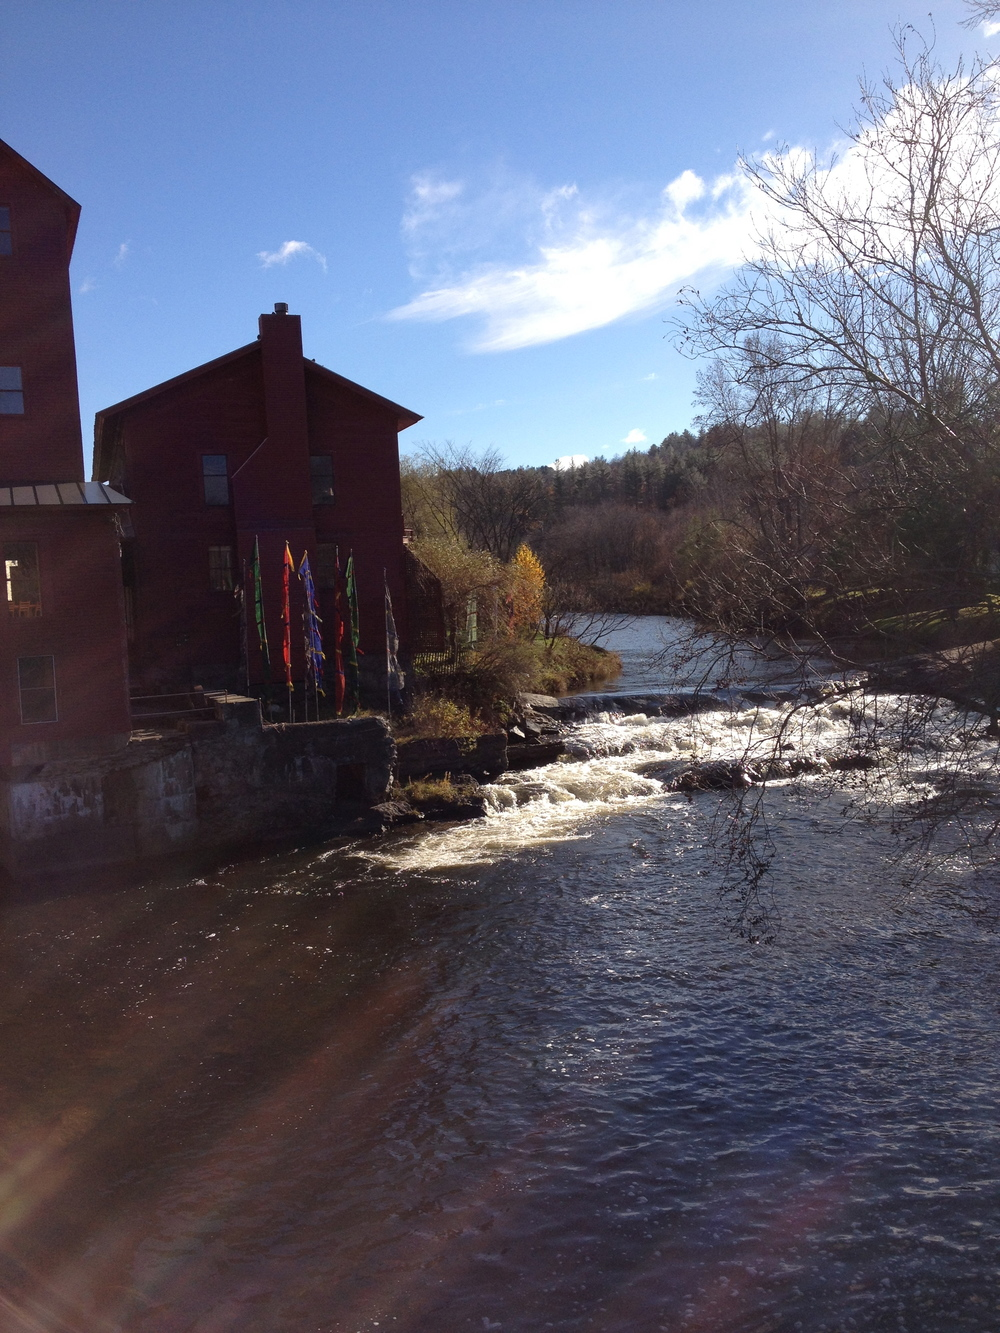 View of the Red Mill